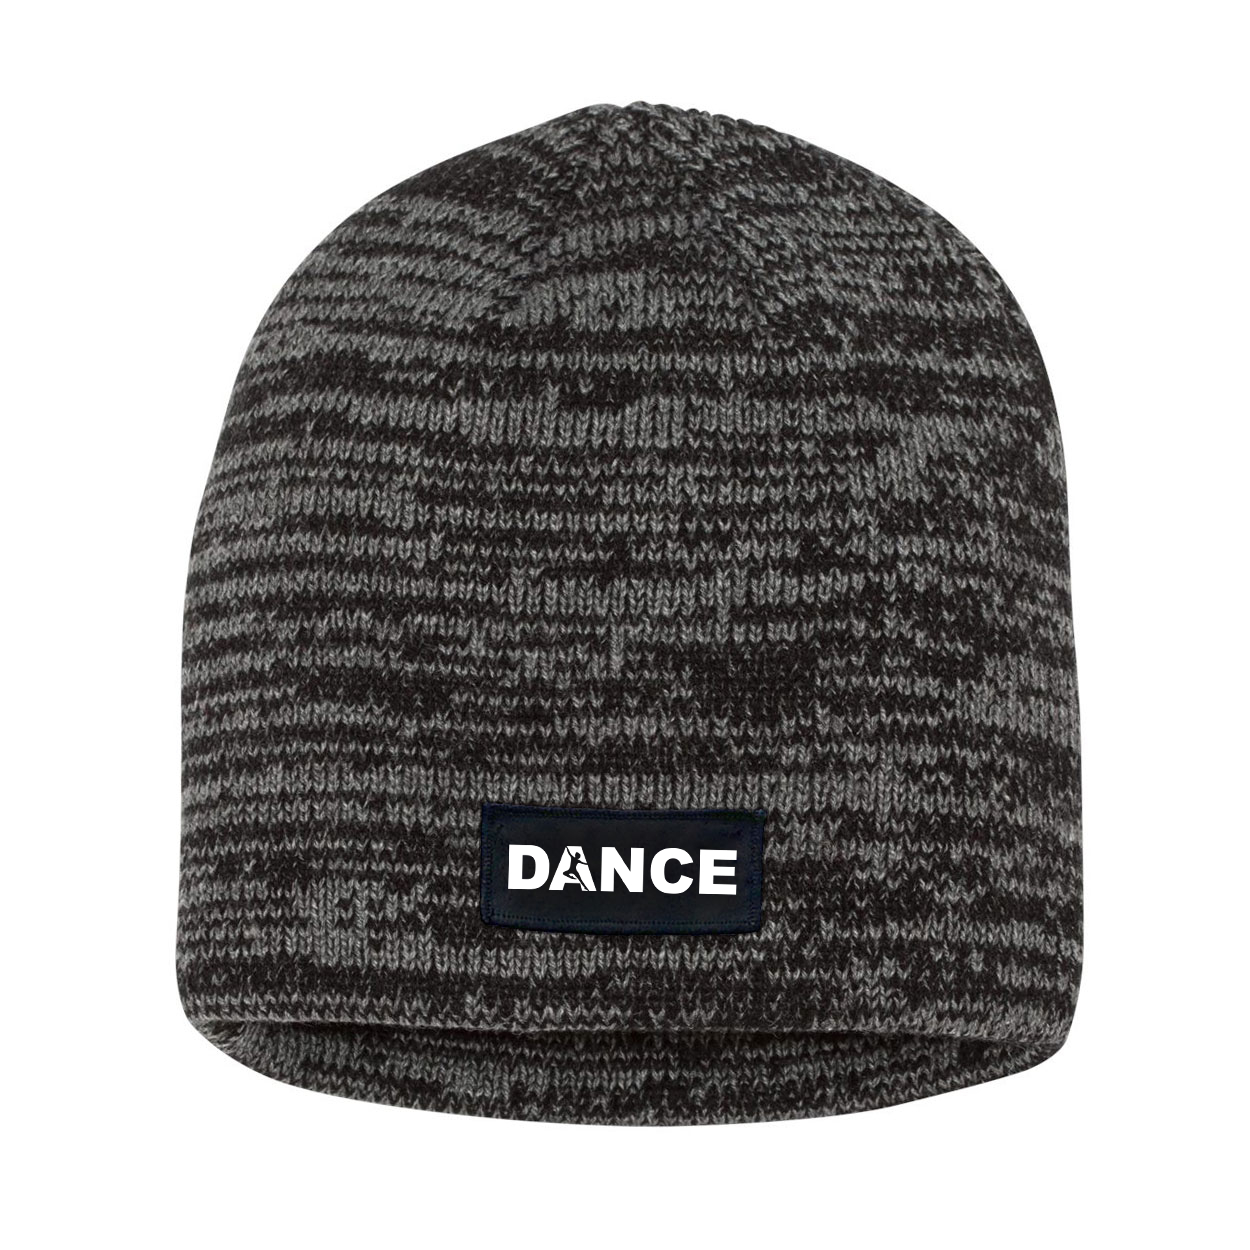 Dance Silhouette Logo Night Out Woven Patch Skully Marled Knit Beanie Black/Gray (White Logo)